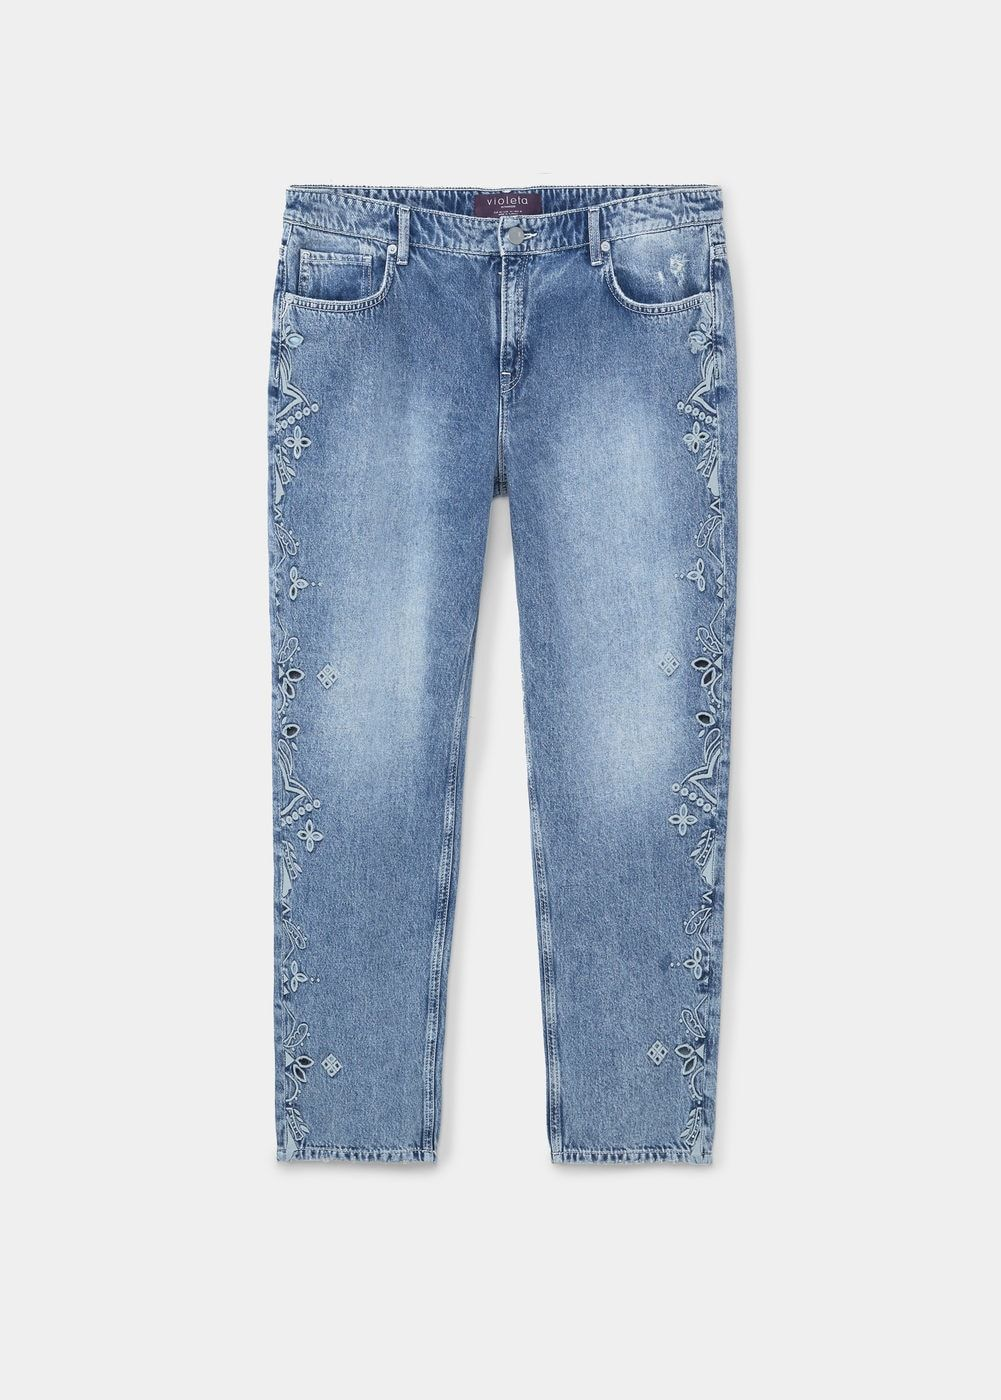 e2f44683147f6a Jeans girlfriend bordados - Tallas grandes | Products that I love ...